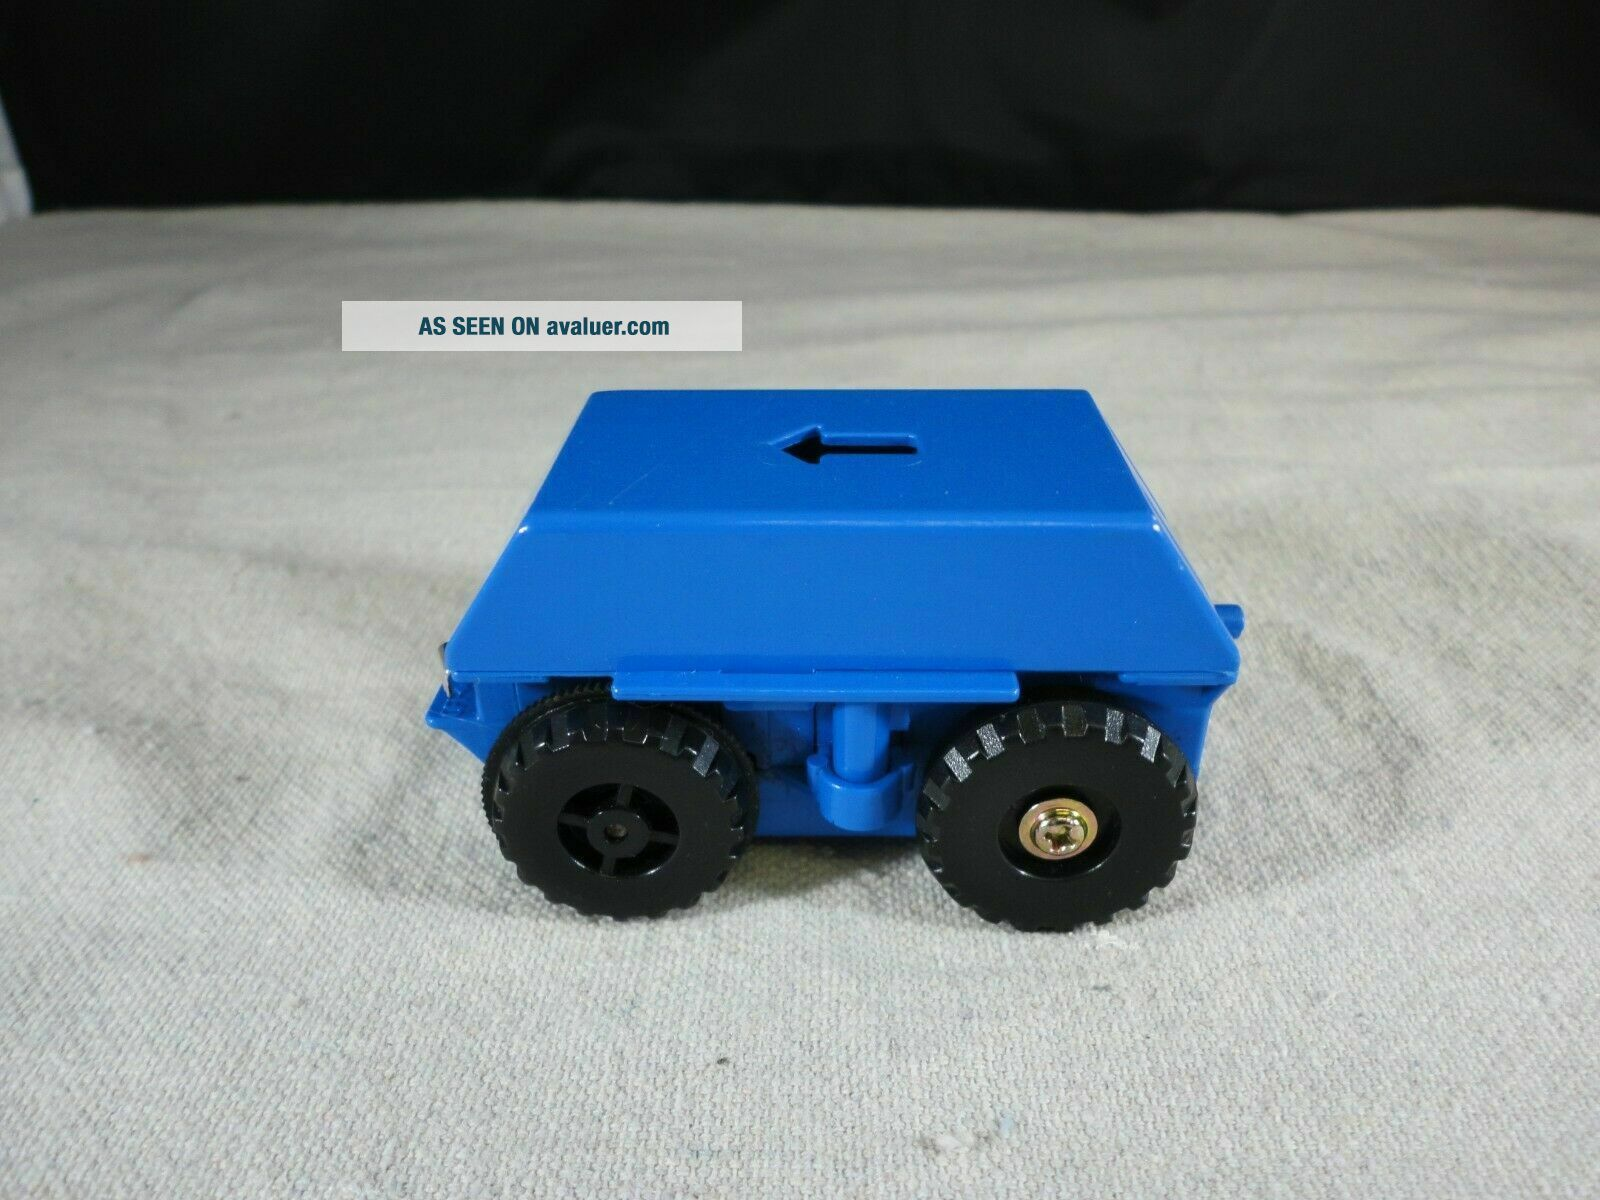 Tomy BIG Loader thomas the train - Motorized Chassis Blue 1977 - Tested/Working